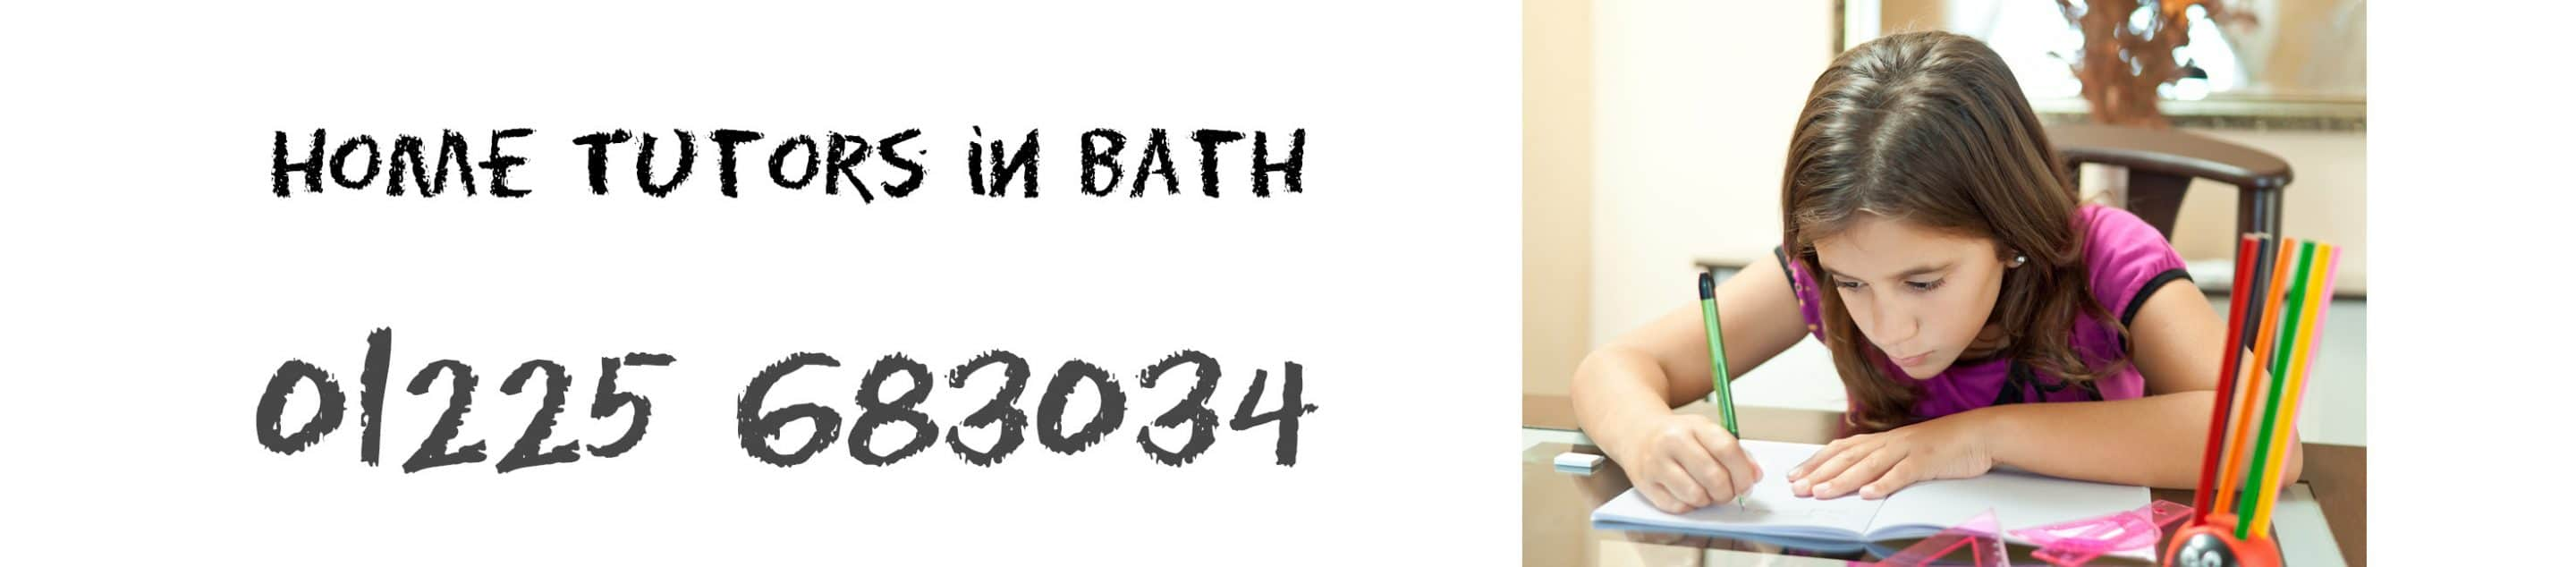 Home Tutors in Bath